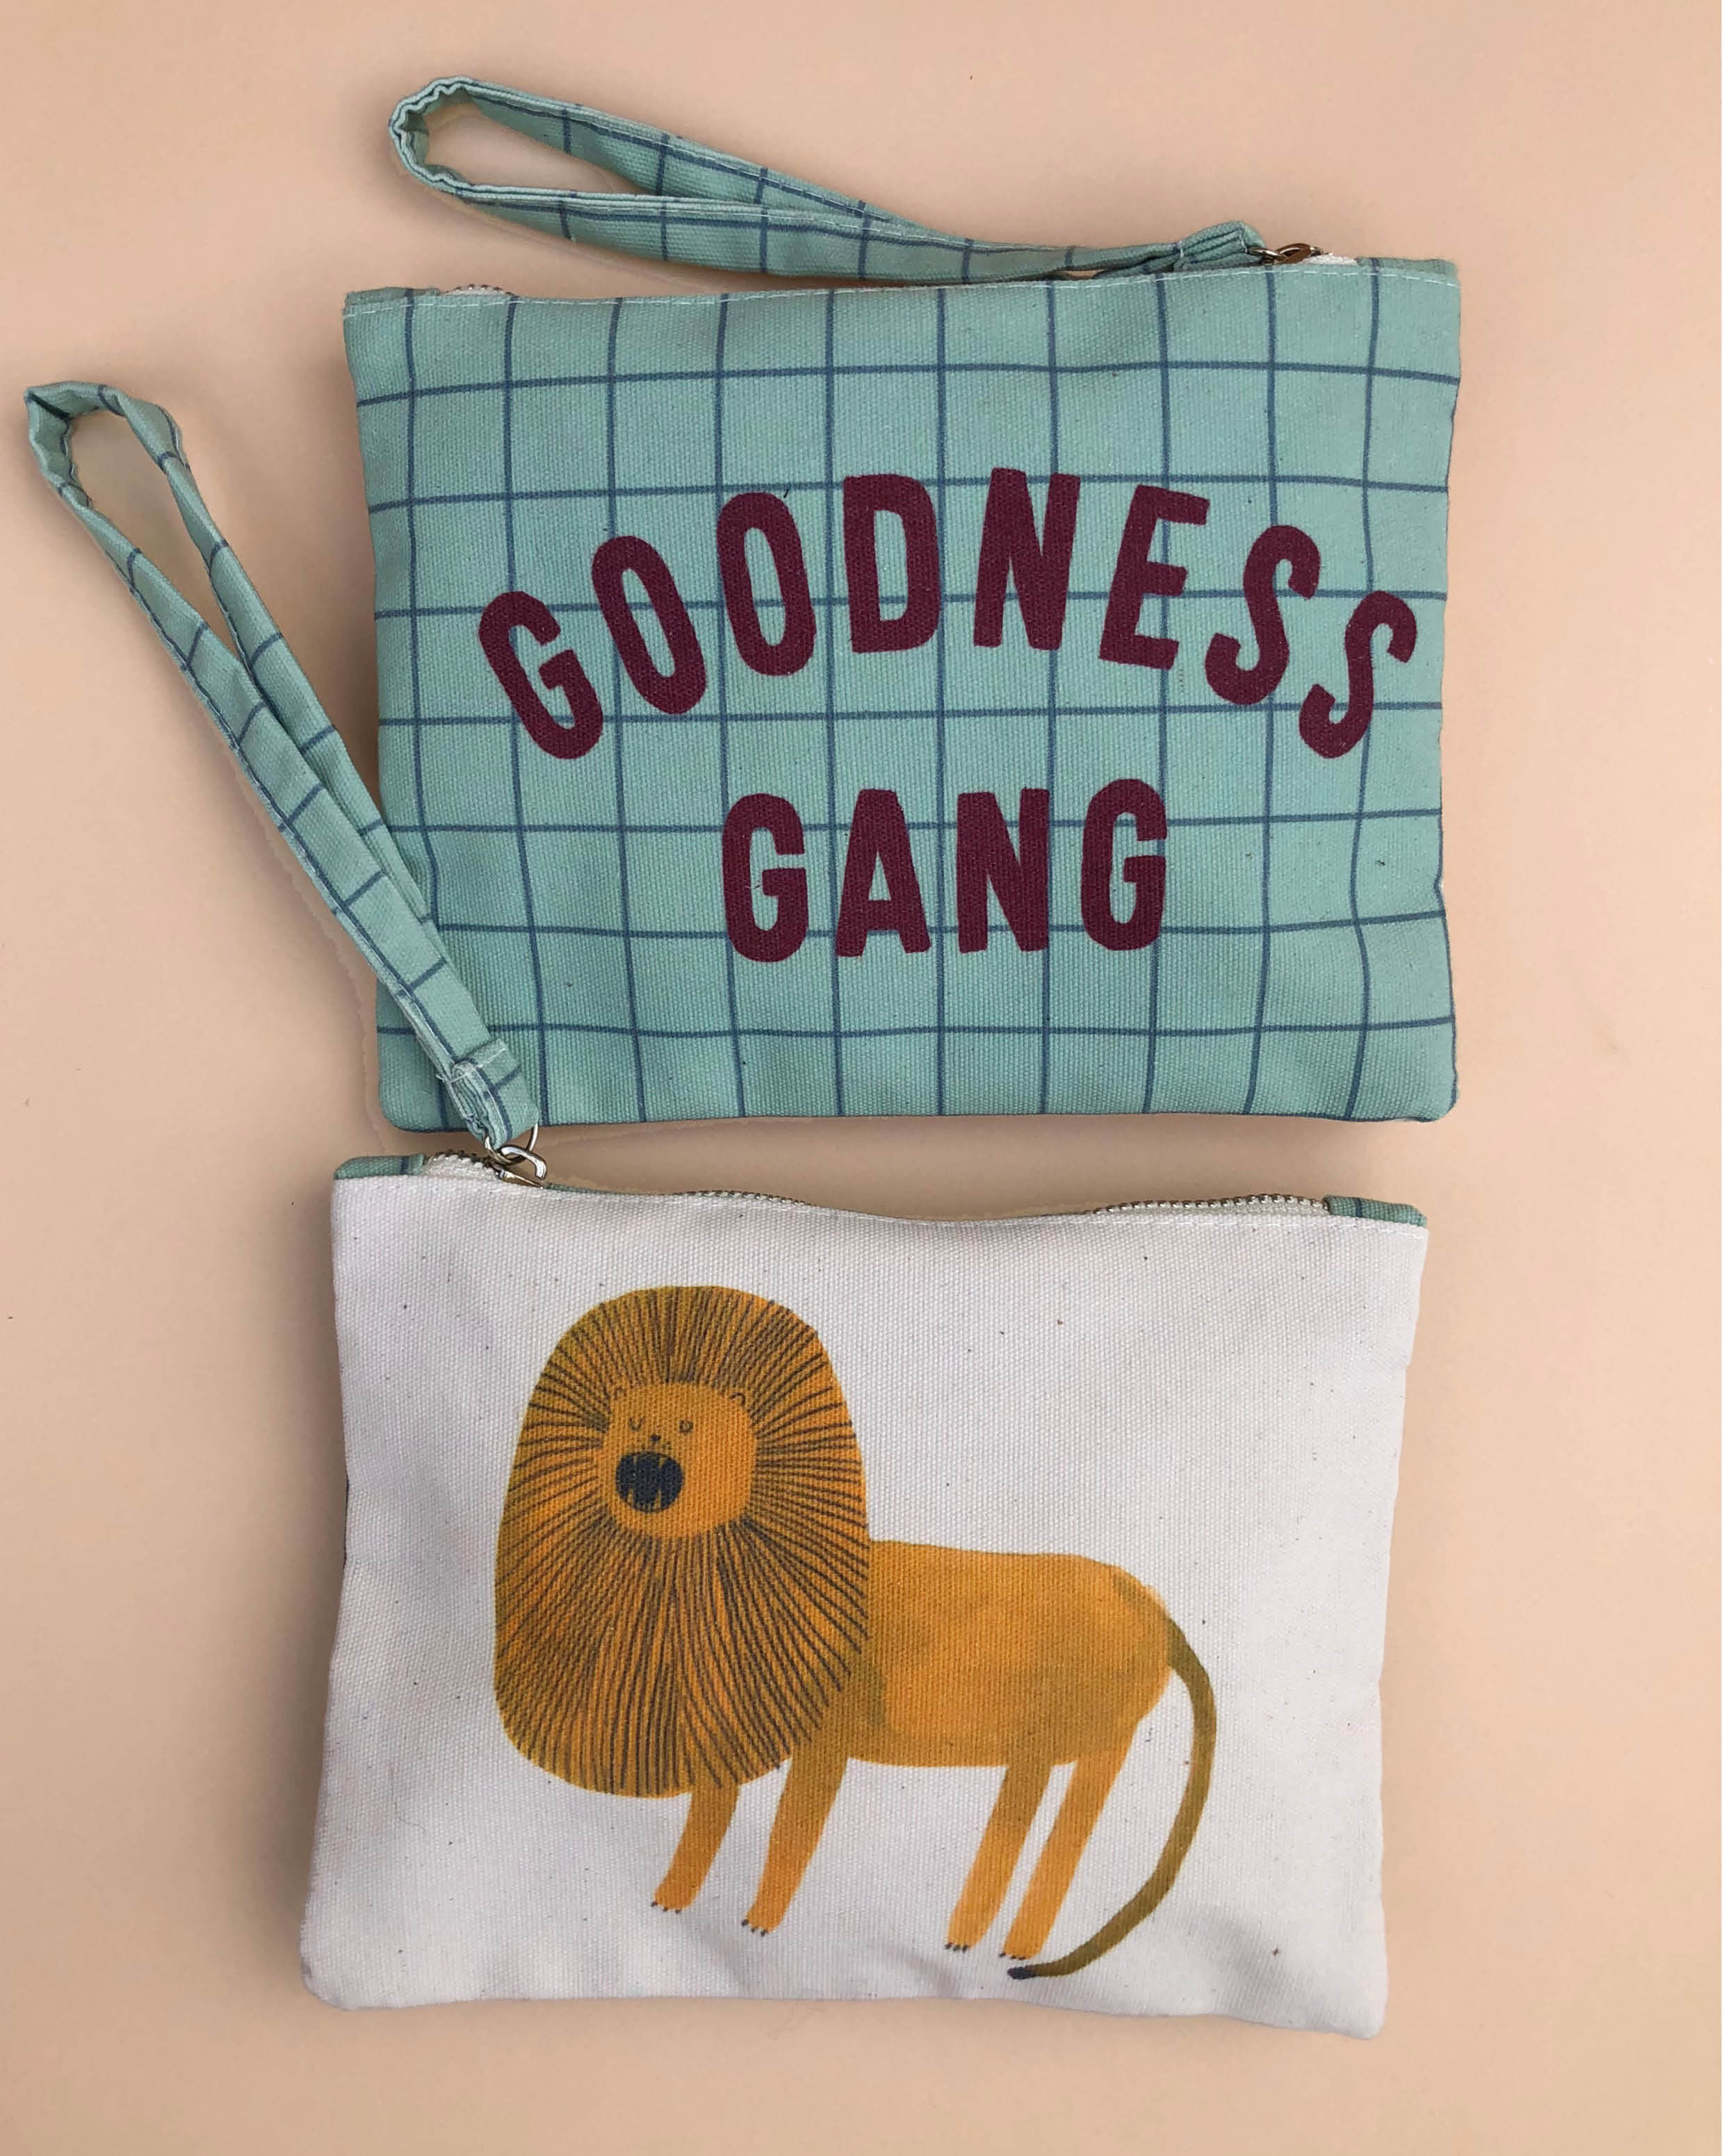 Goodnessgang products clutch. Concept by Joëlle Wehkamp en Aniek Bartels